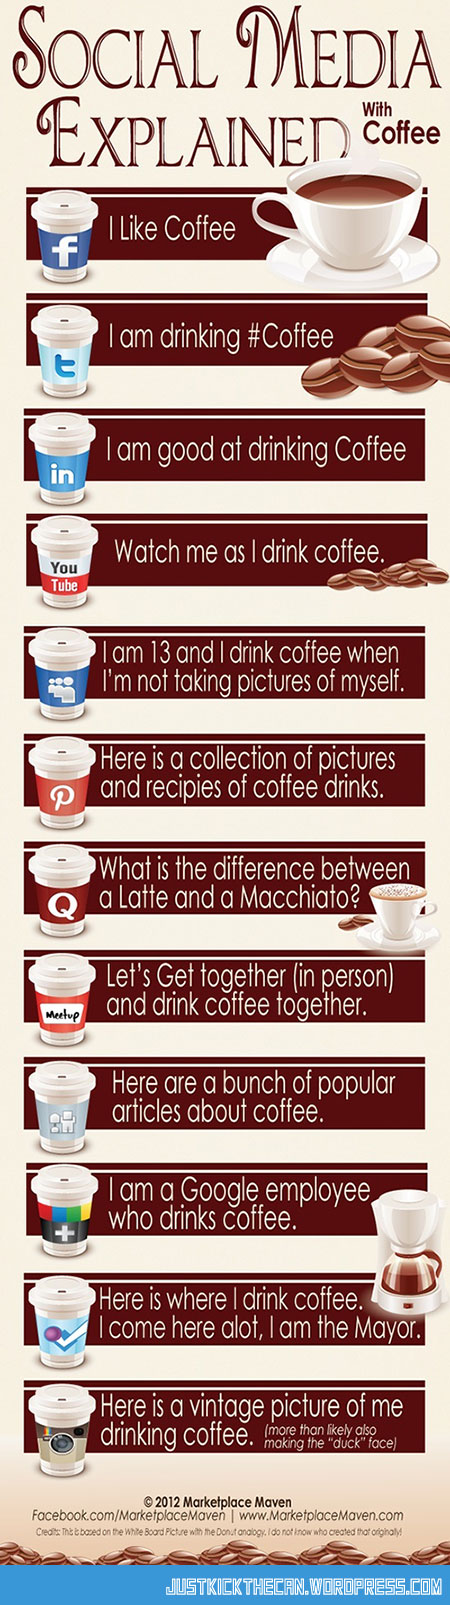 funny-social-media-explained-coffe